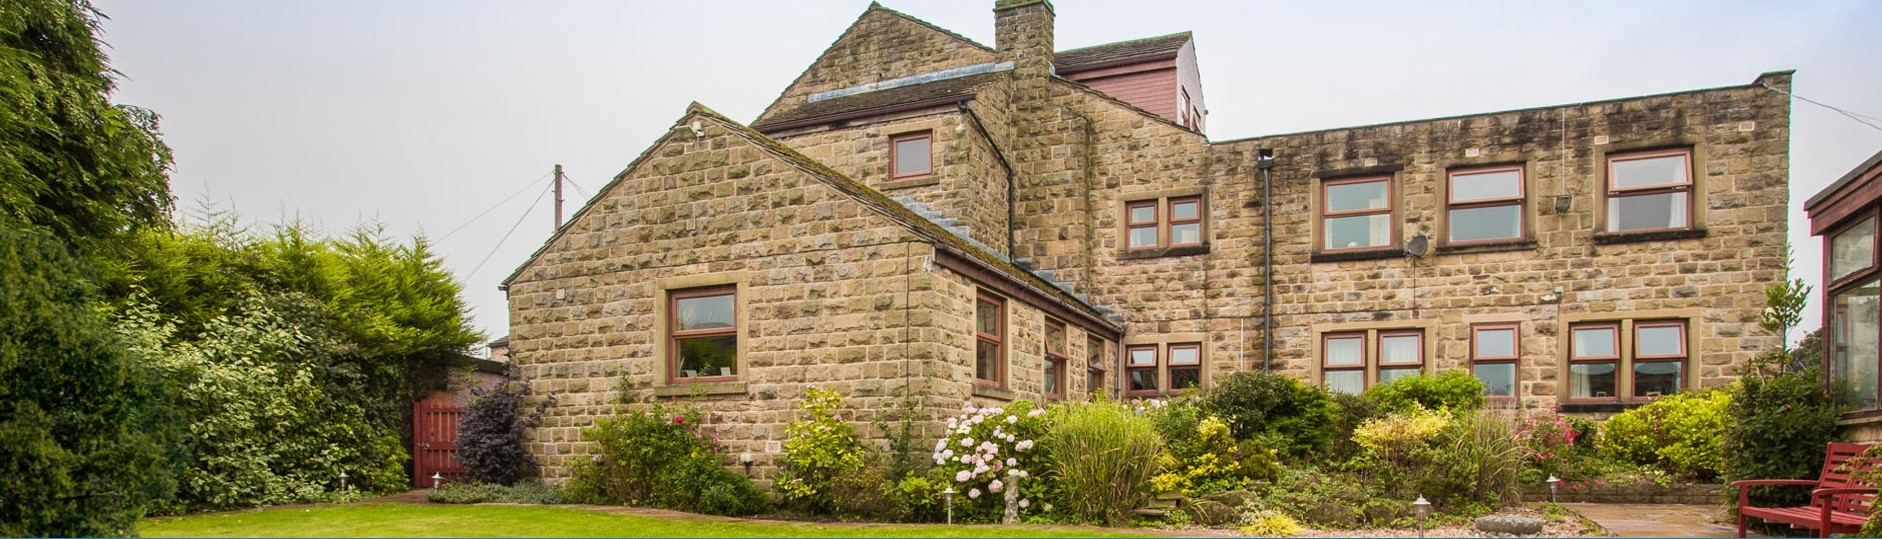 Roberttown Care Home